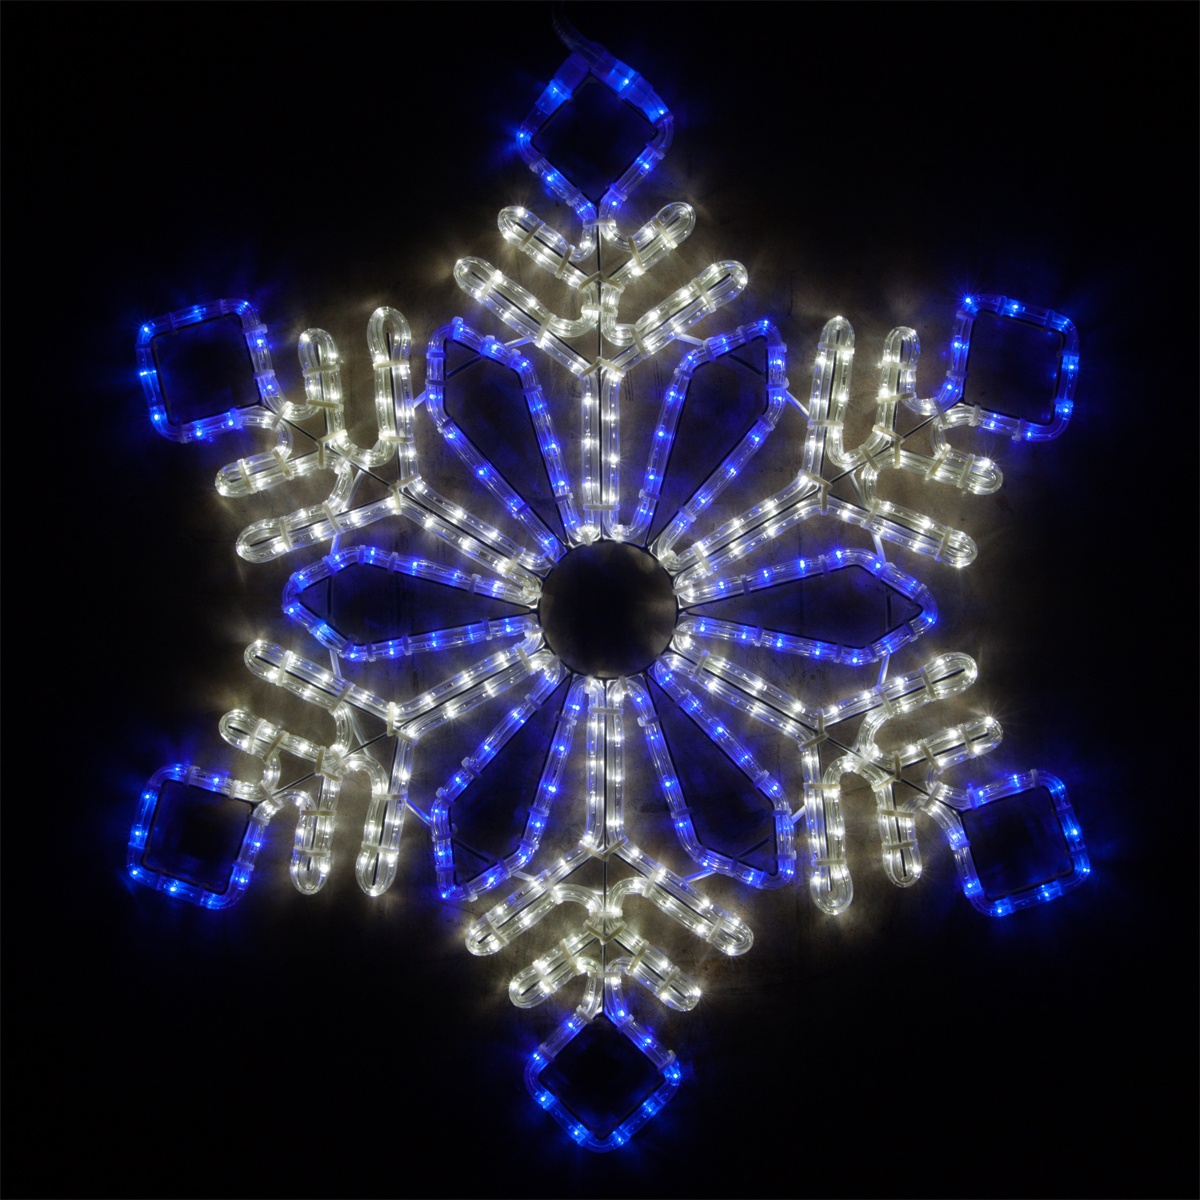 blue and white snowflake LED rope light motif